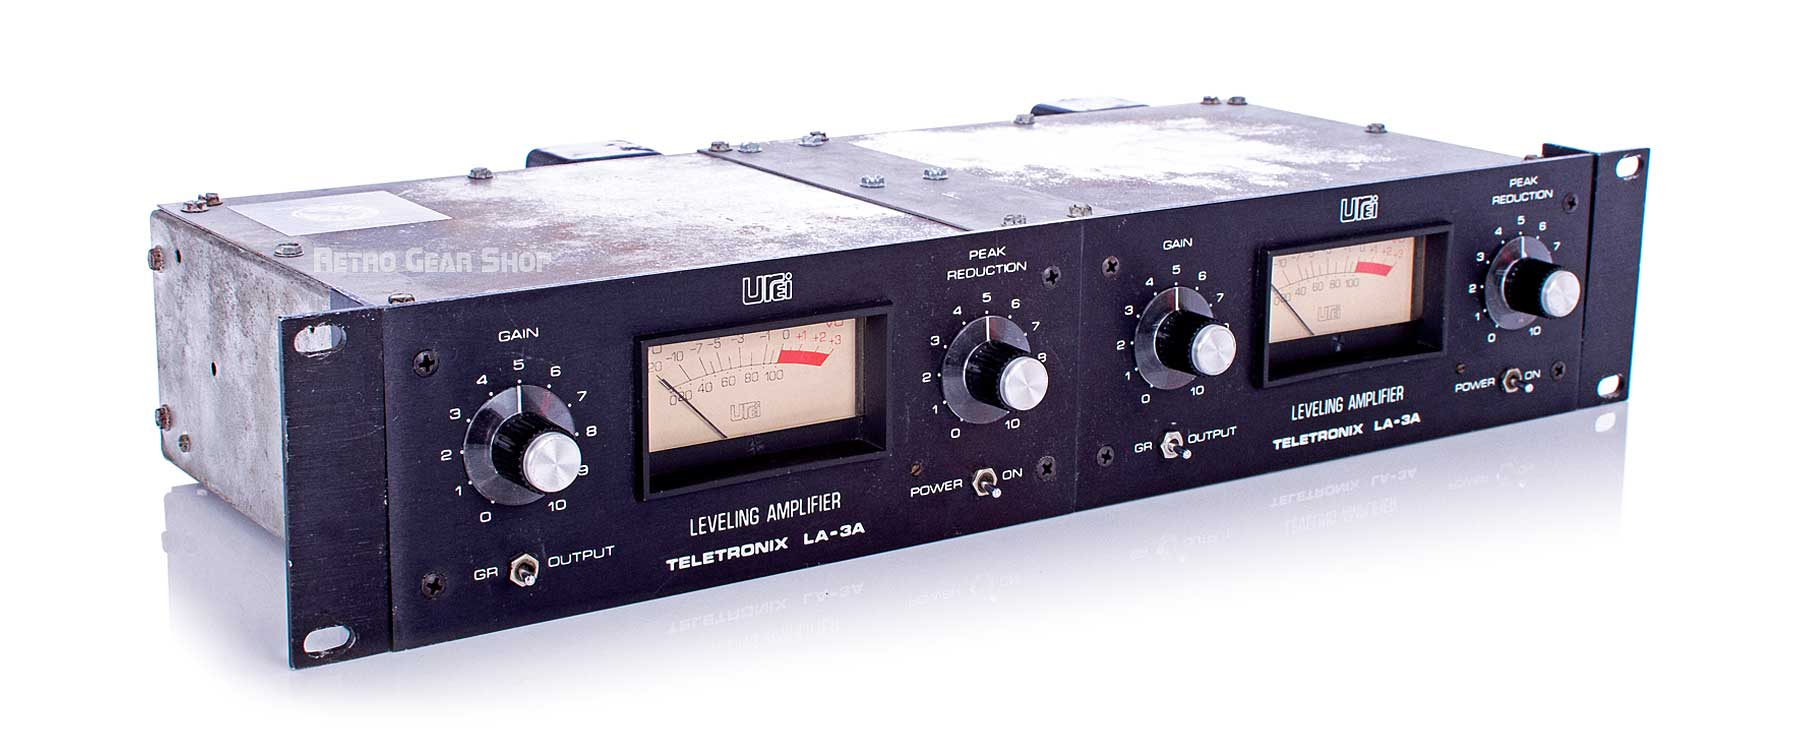 Urei LA-3A Leveling Amplifier Stereo Pair Top Left